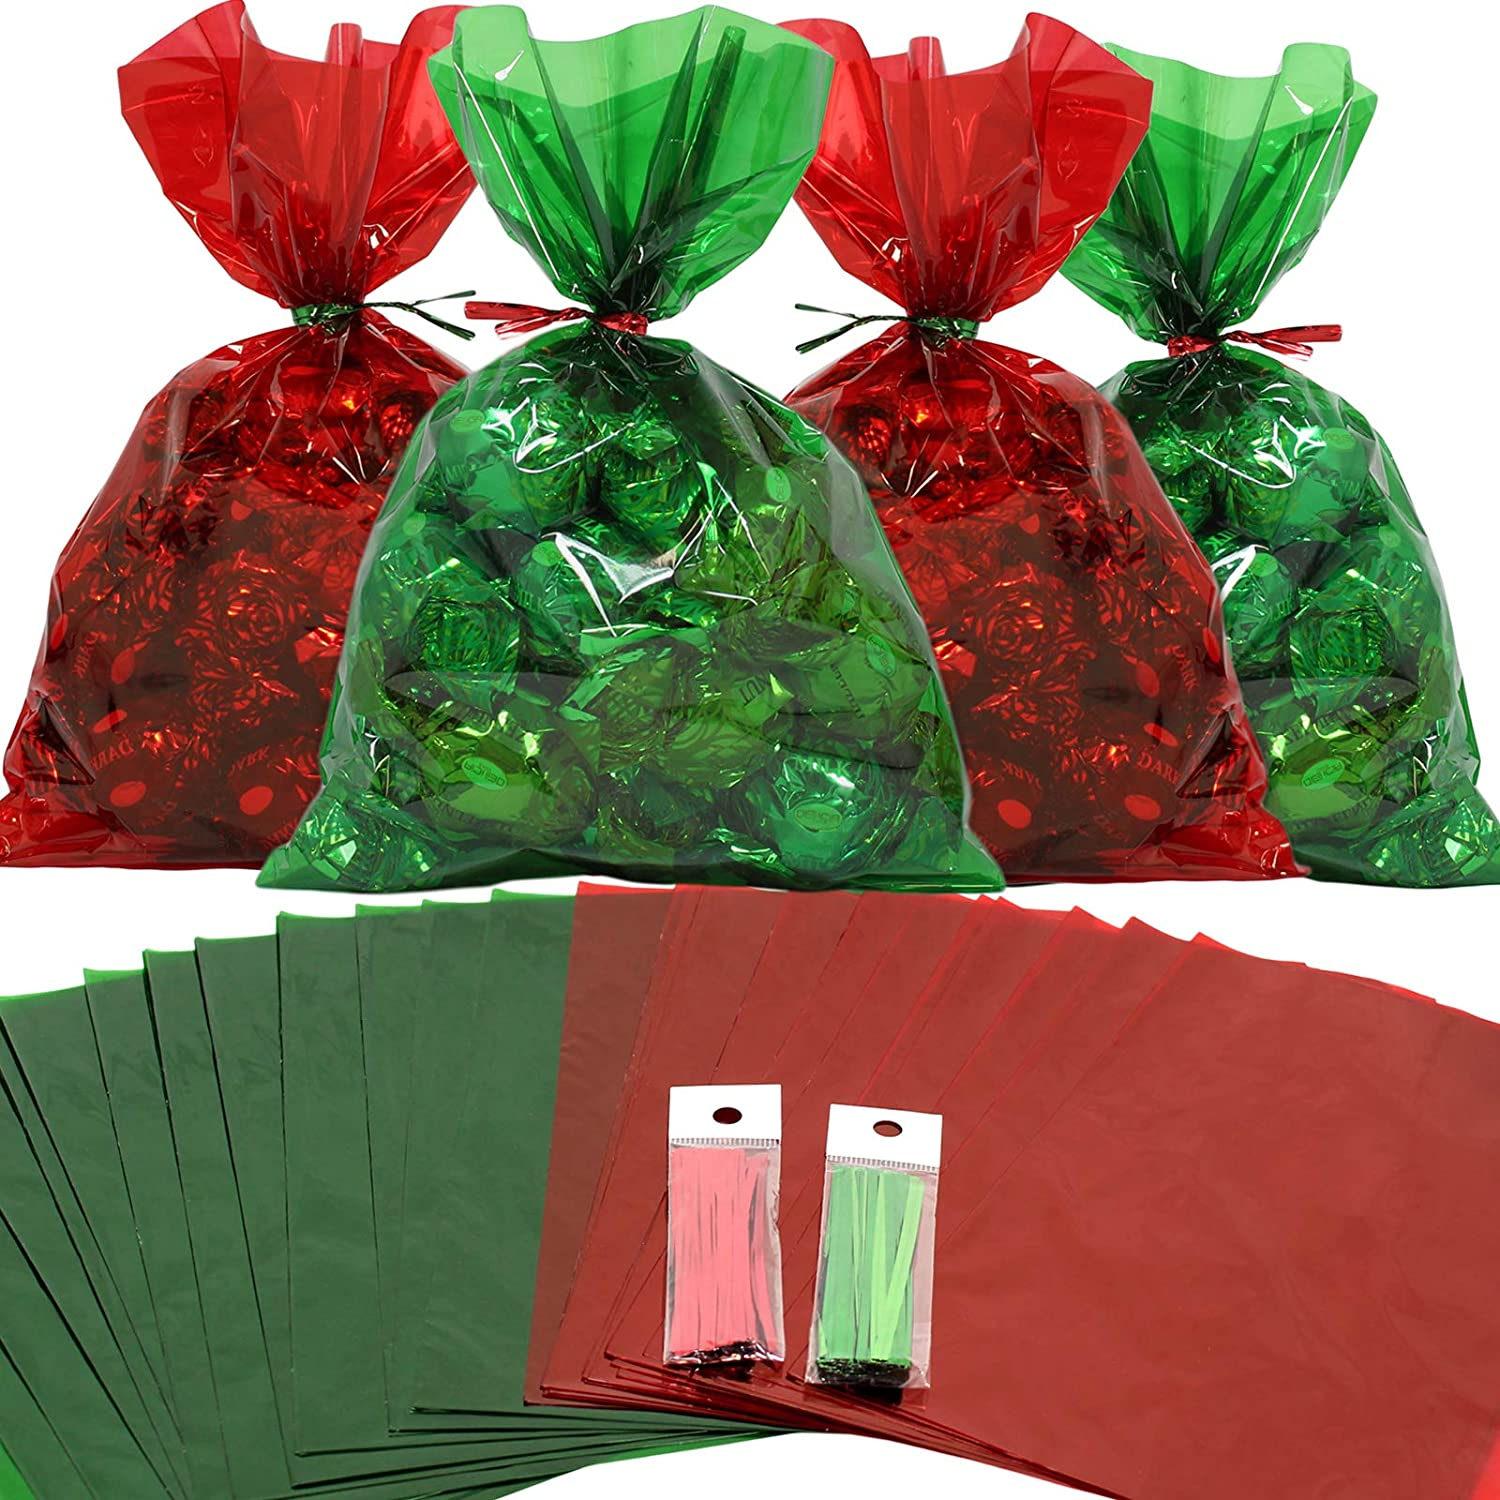 Cellophane Treat Bags 100 pcs Mix Holiday Colors (6 Inch x 9 Inch) | Colorful Cello Bags Christmas Colors with Twist Ties | 2.5 Mil Quality Green & Red Cellophane Treat Bags | Transparent 6x9 in Bags